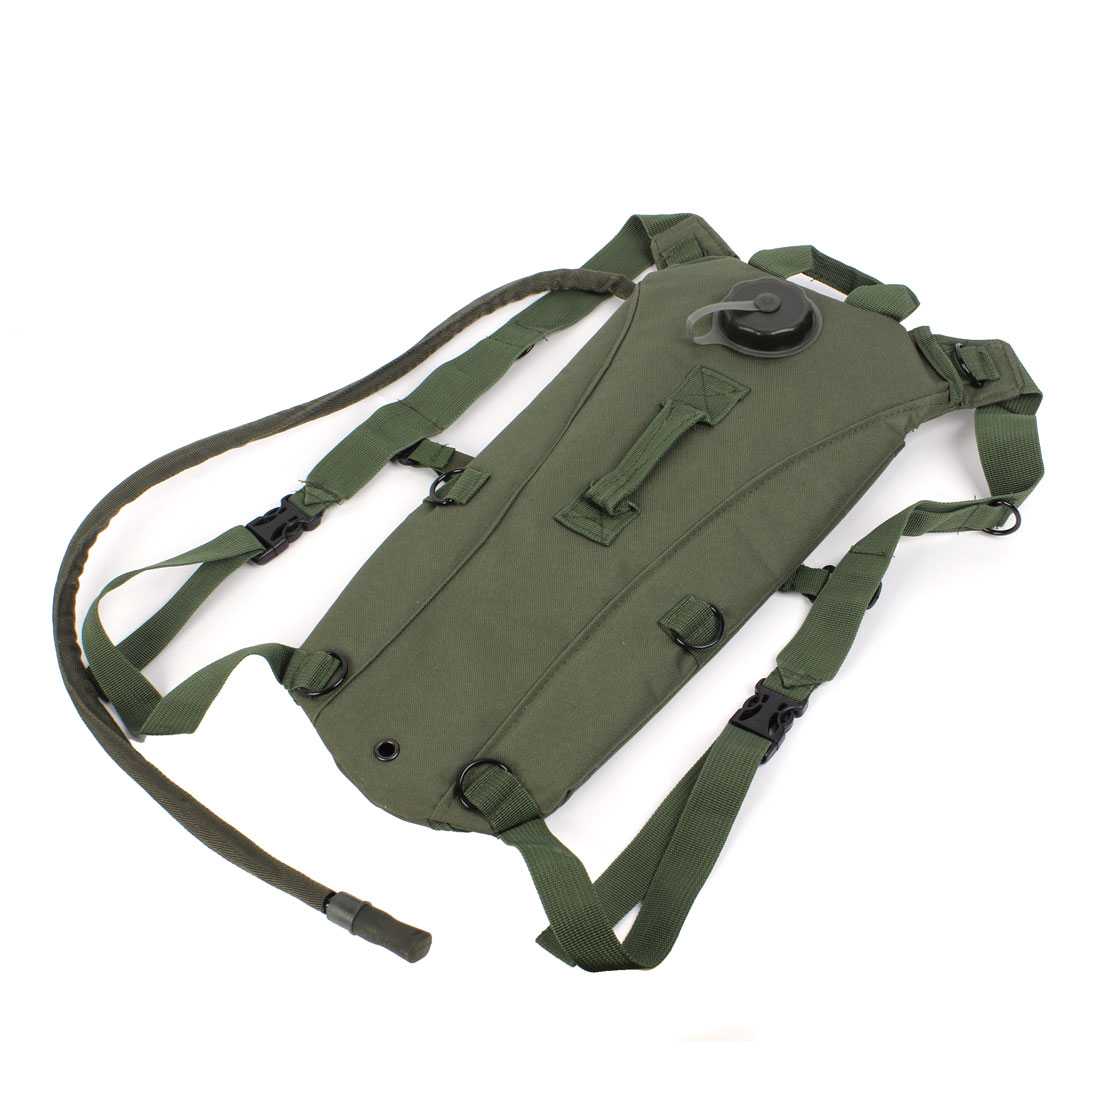 Hiking 3L TPU Hydration System Water Bladder Bag Backpack Army Green